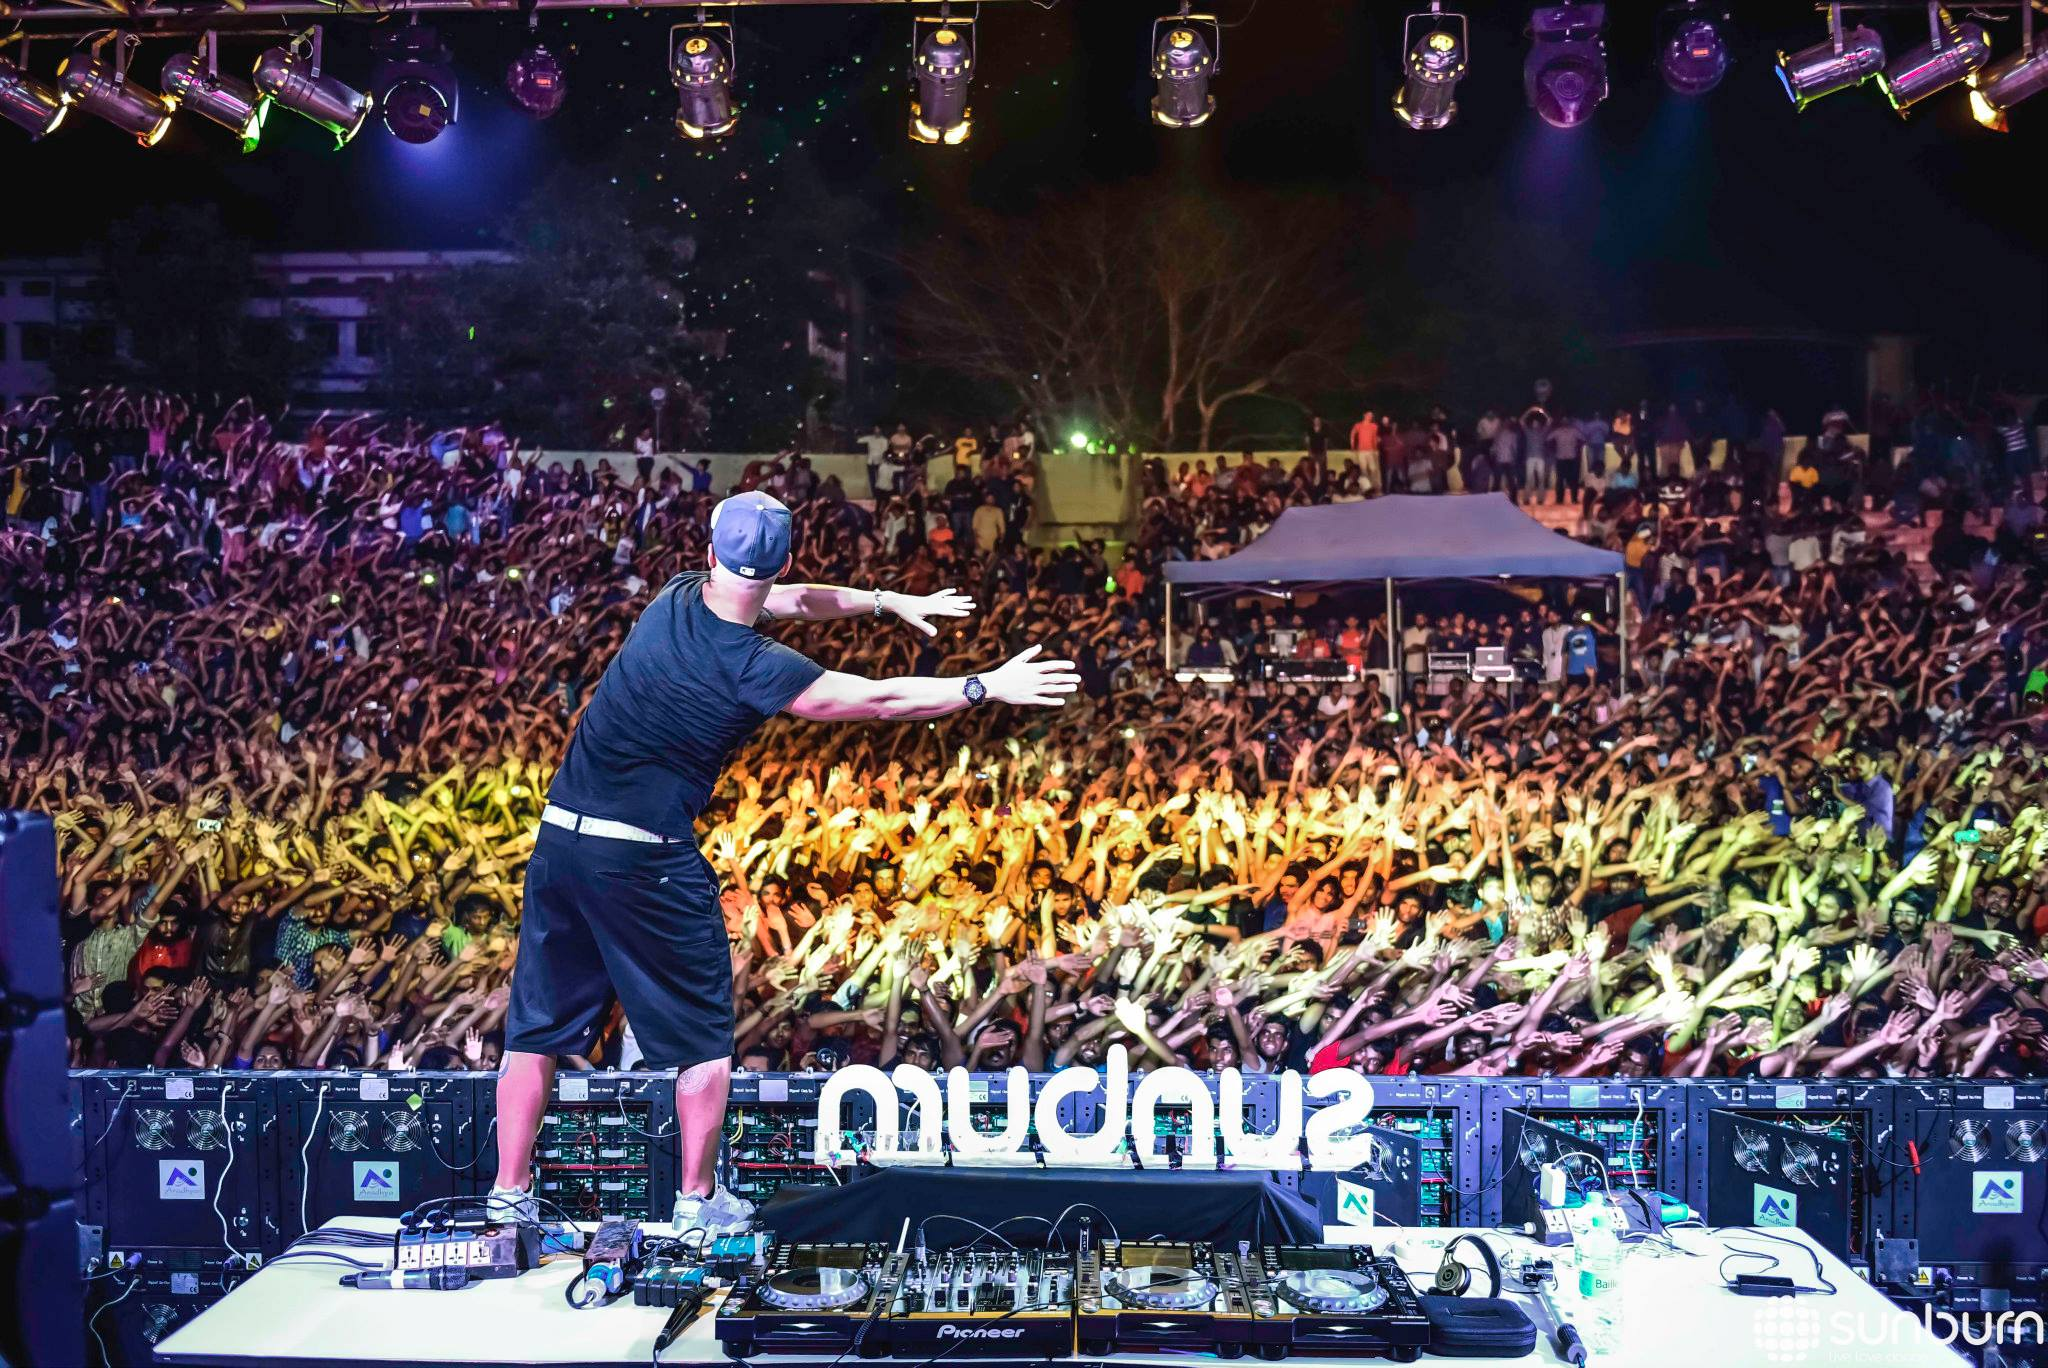 Sunburn Music Festival targeted for possible terror attackSunburnragam